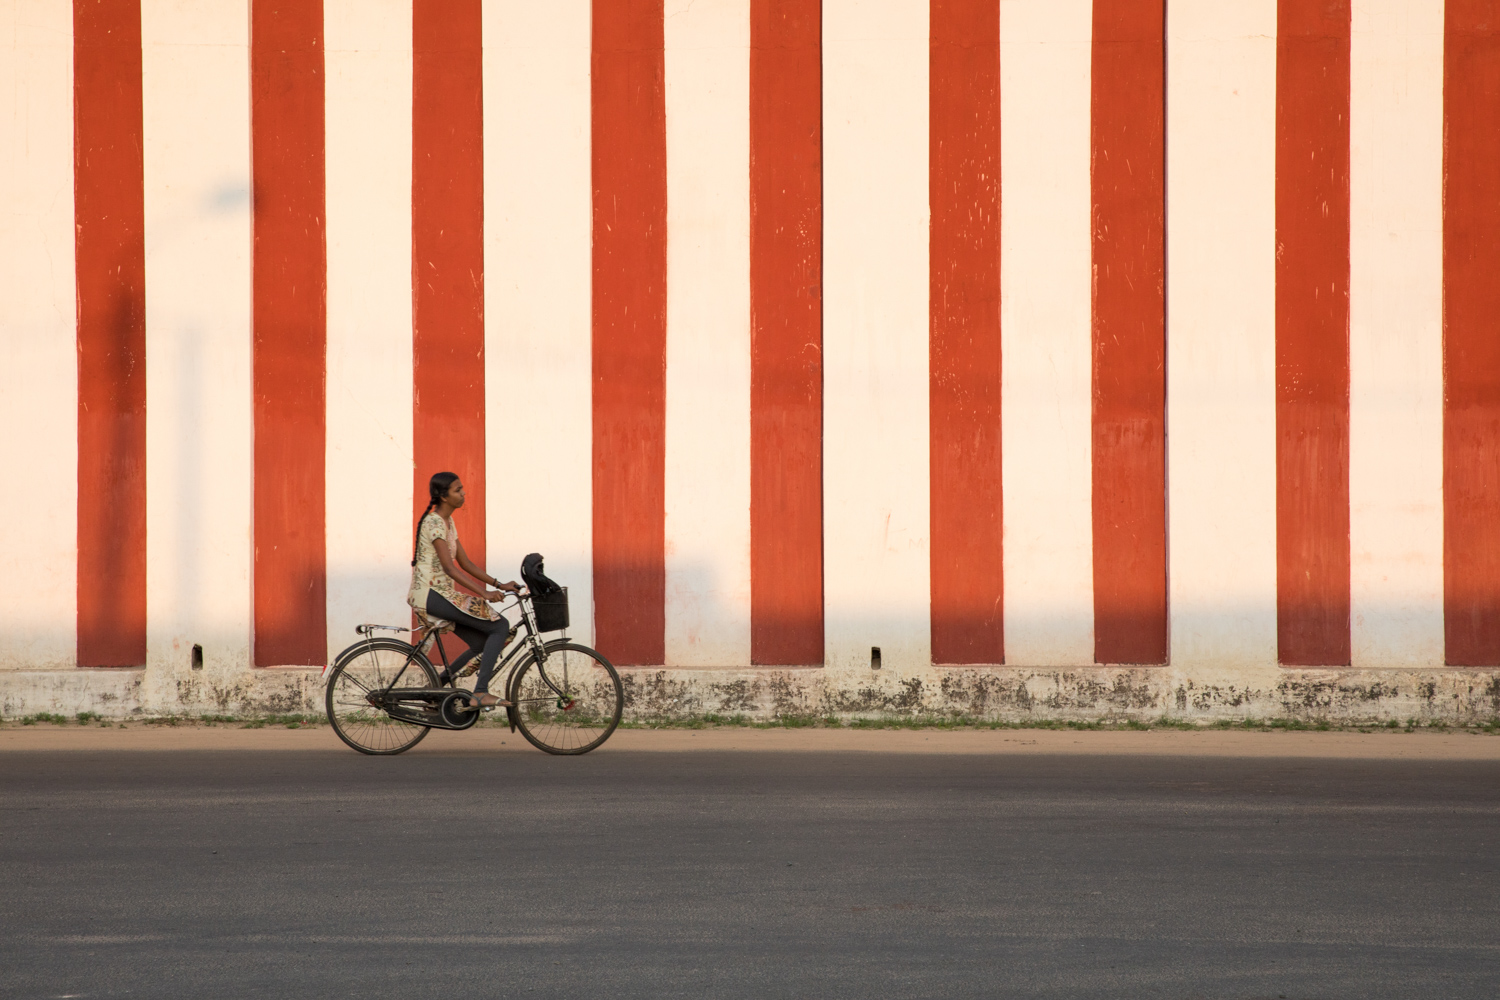 3 - 6 Ways to Photograph People While Traveling